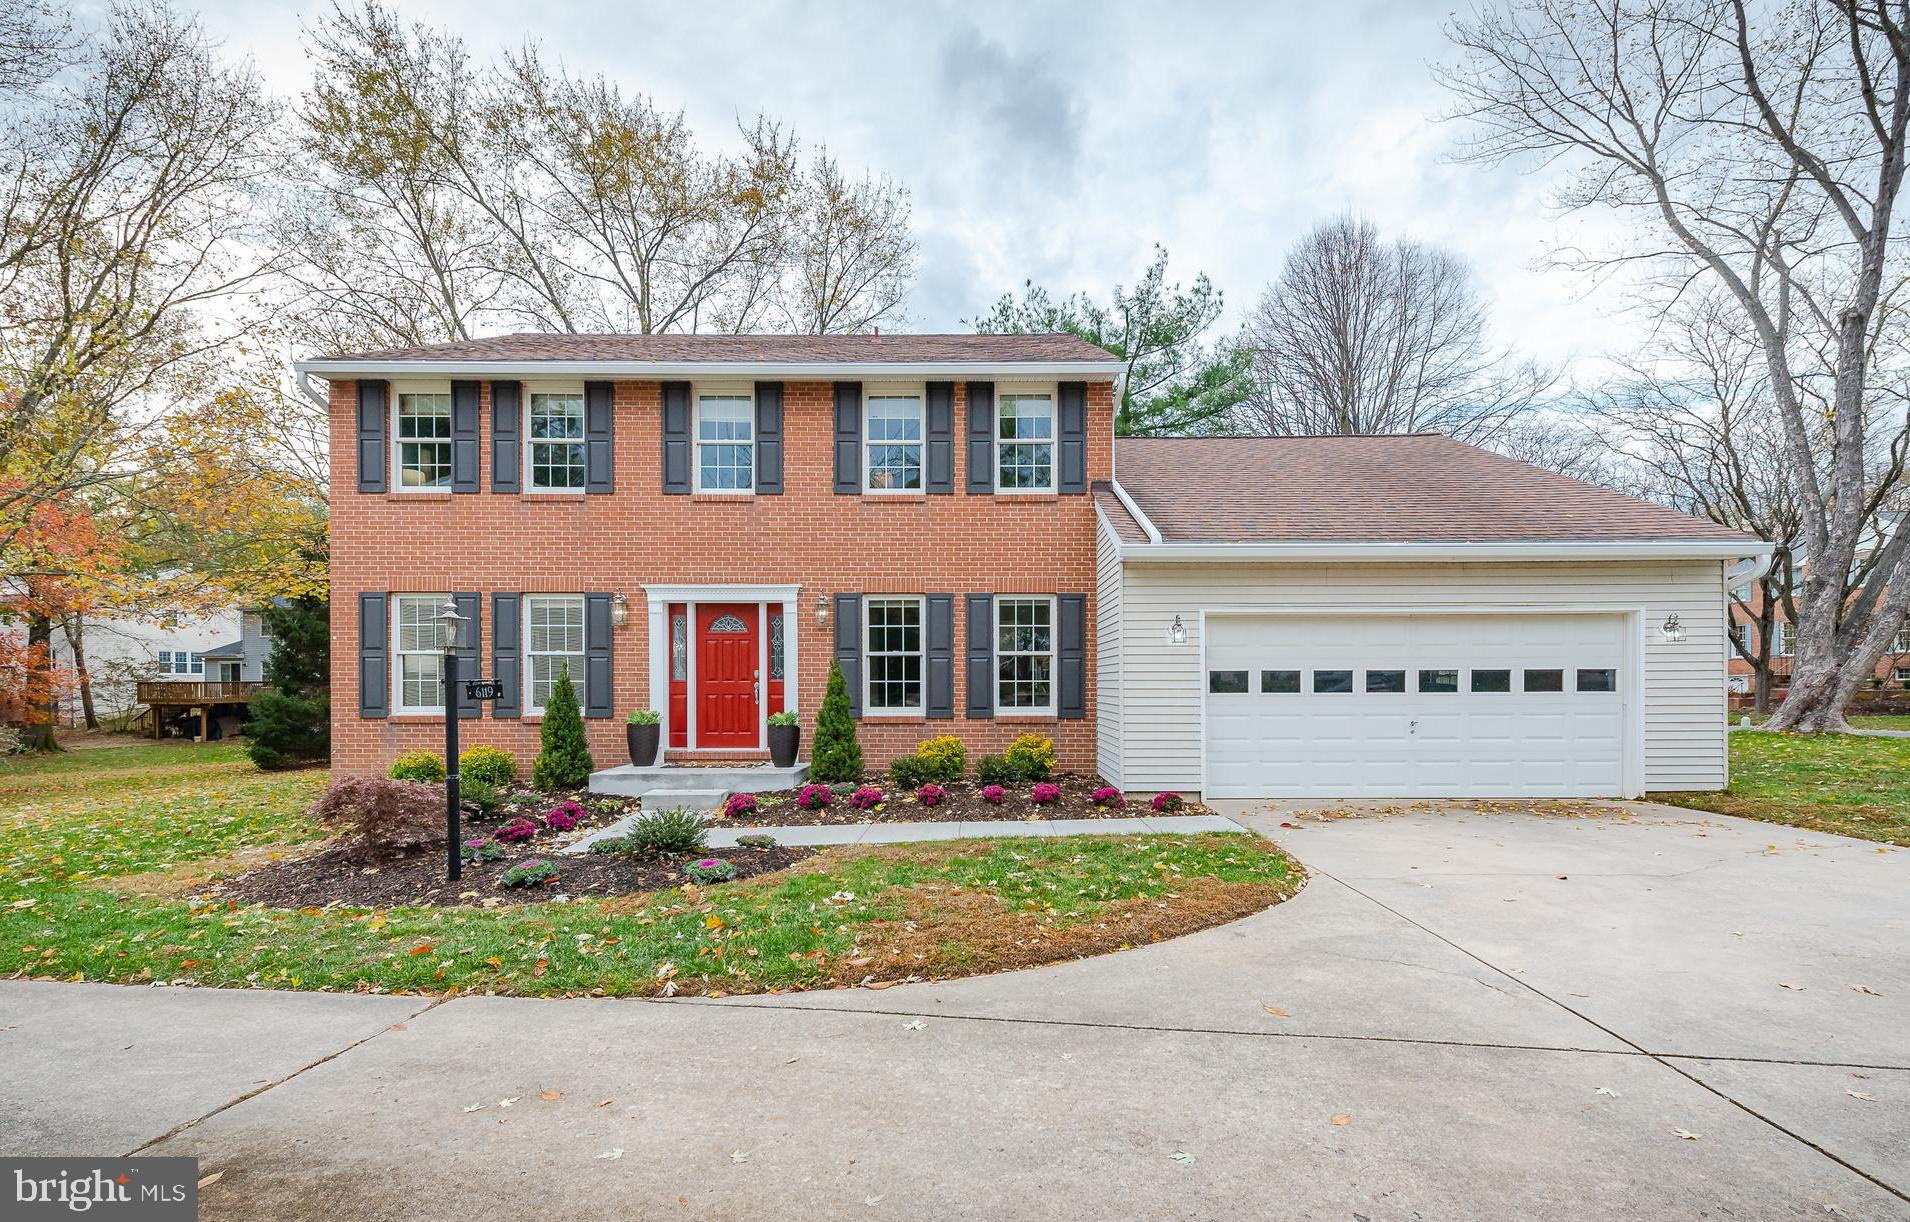 Brick front home perfectly set on a cul-de-sac in the Village of Long Reach is upgraded and move-in